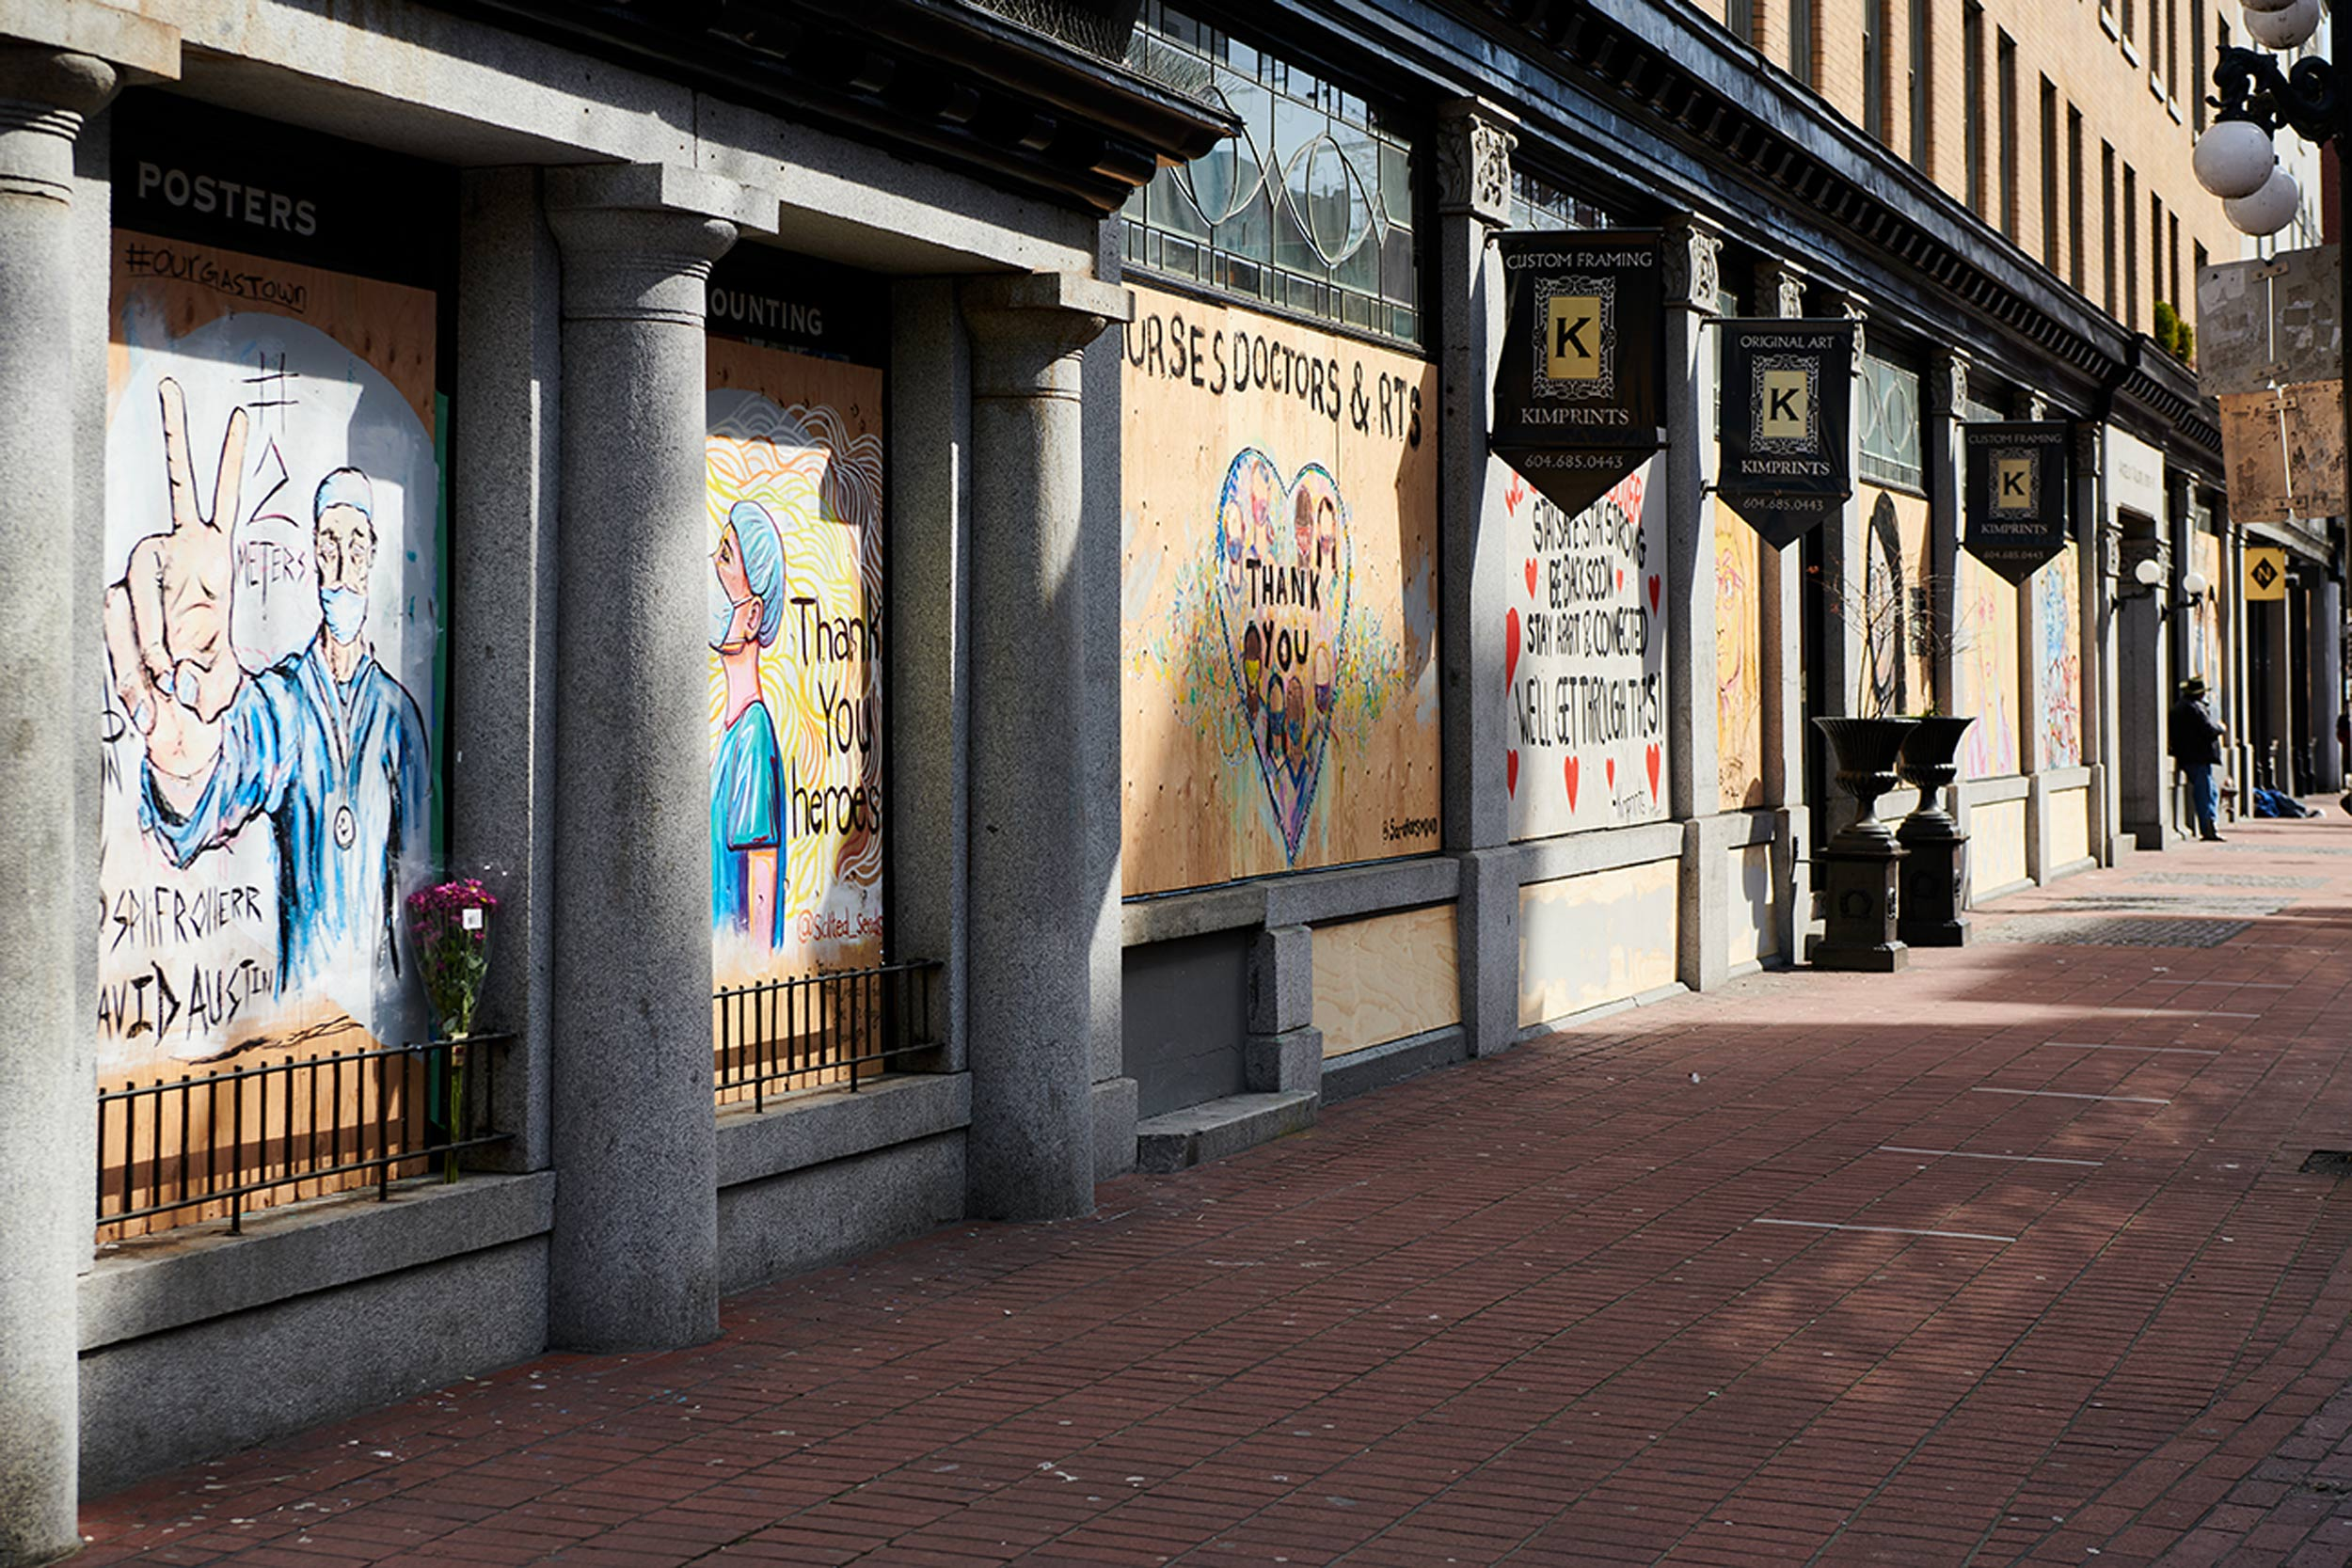 2020-Pandemic-Murals-of-Gratitude-Gastown-Vancouver-Art-Personal-Project-Erich-Saide-Photographer-Gastown-Street-boarded-COVID